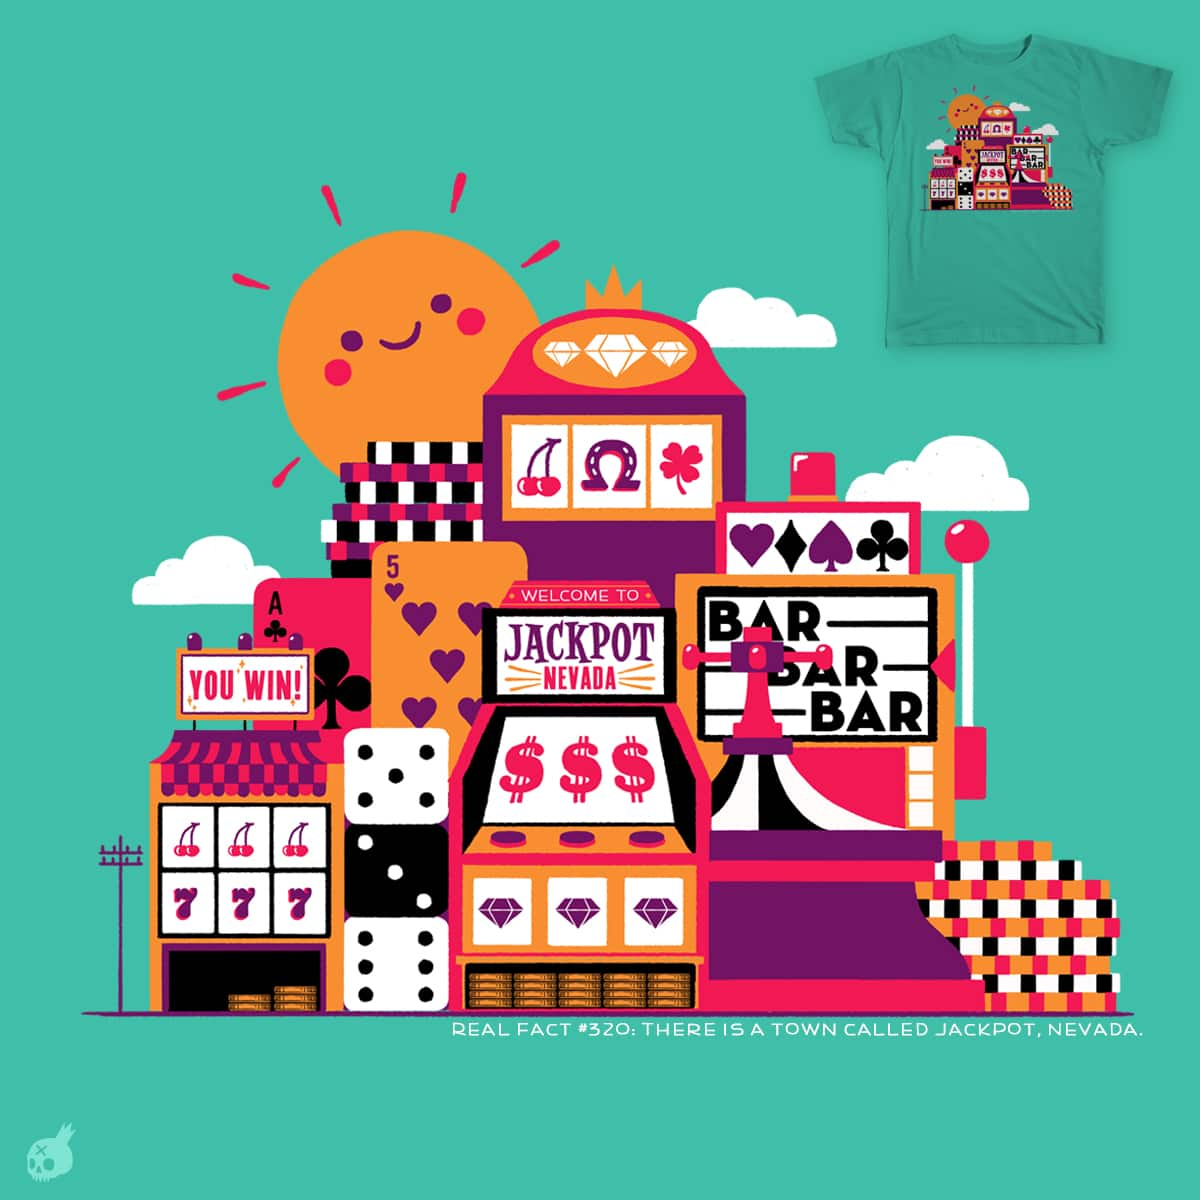 Jackpot City by Poguish on Threadless